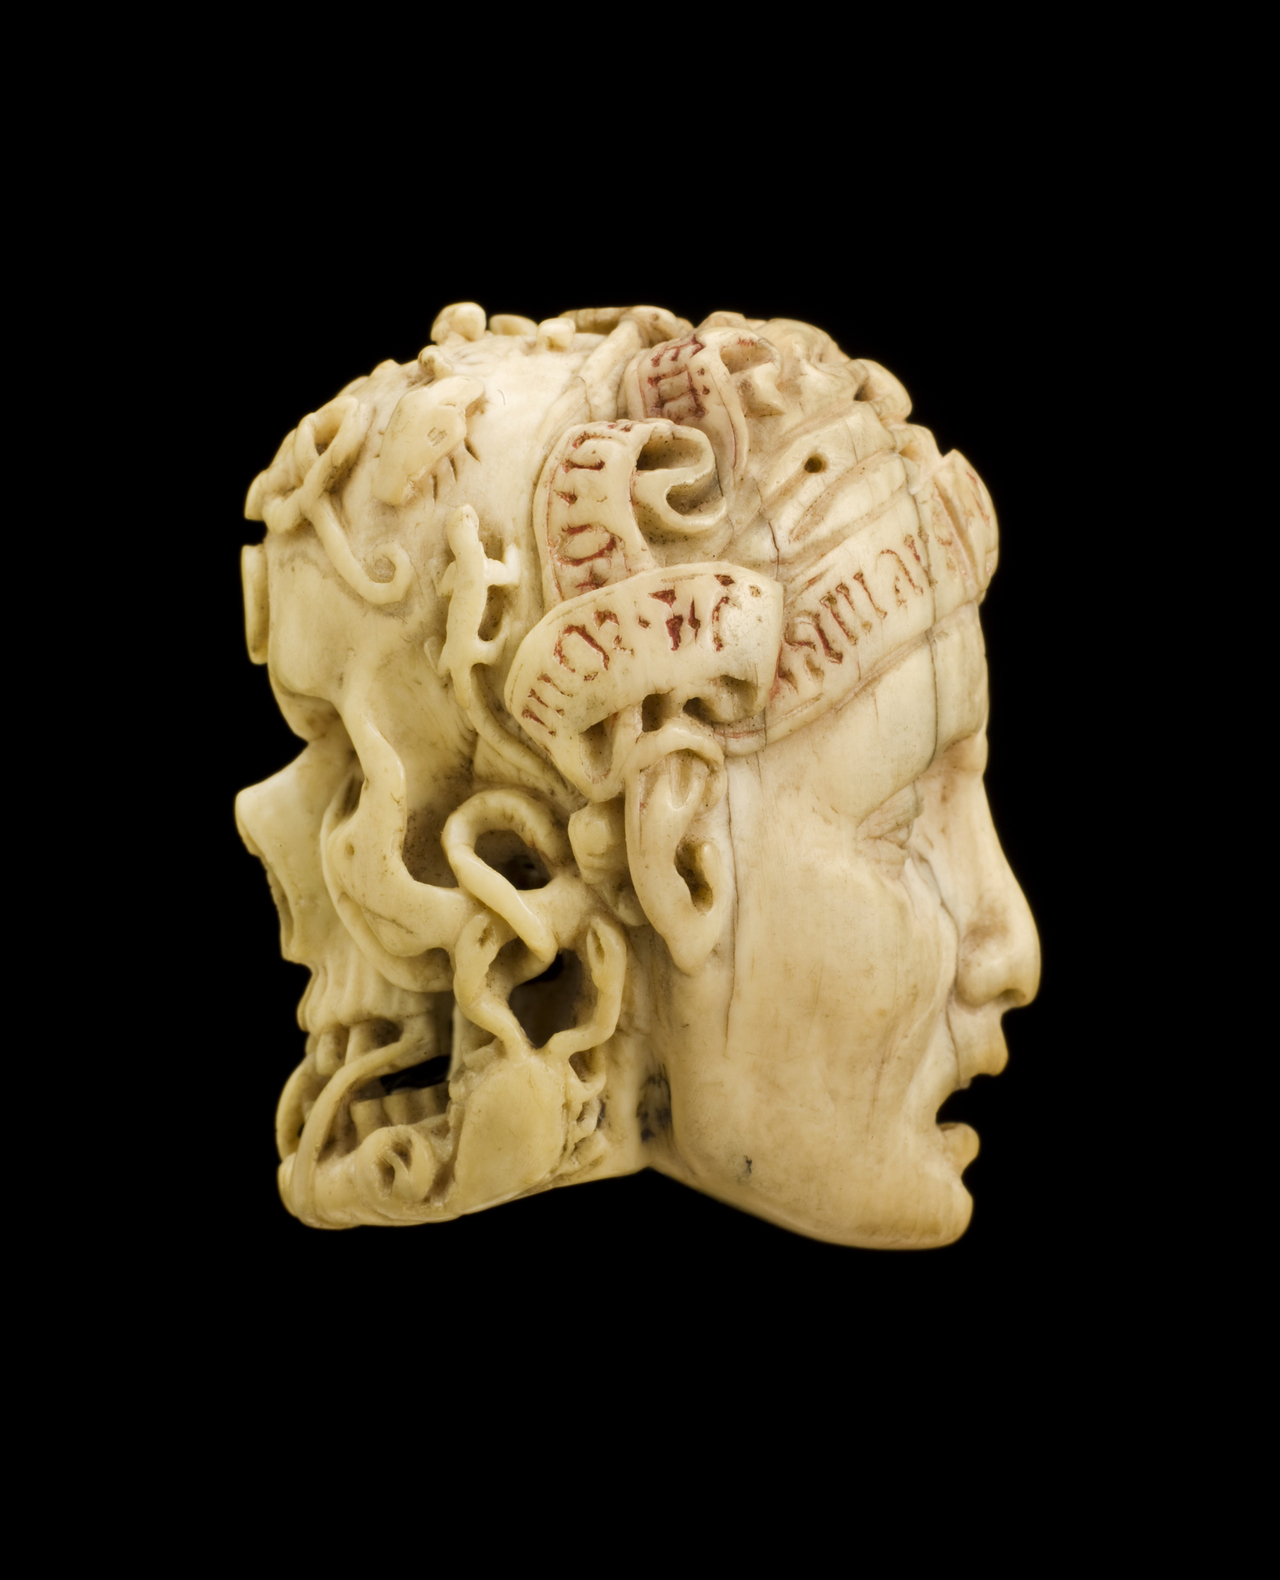 Ivory carving of a skull covered with worms and a human face (via Science Museum, London/Wellcome Images)